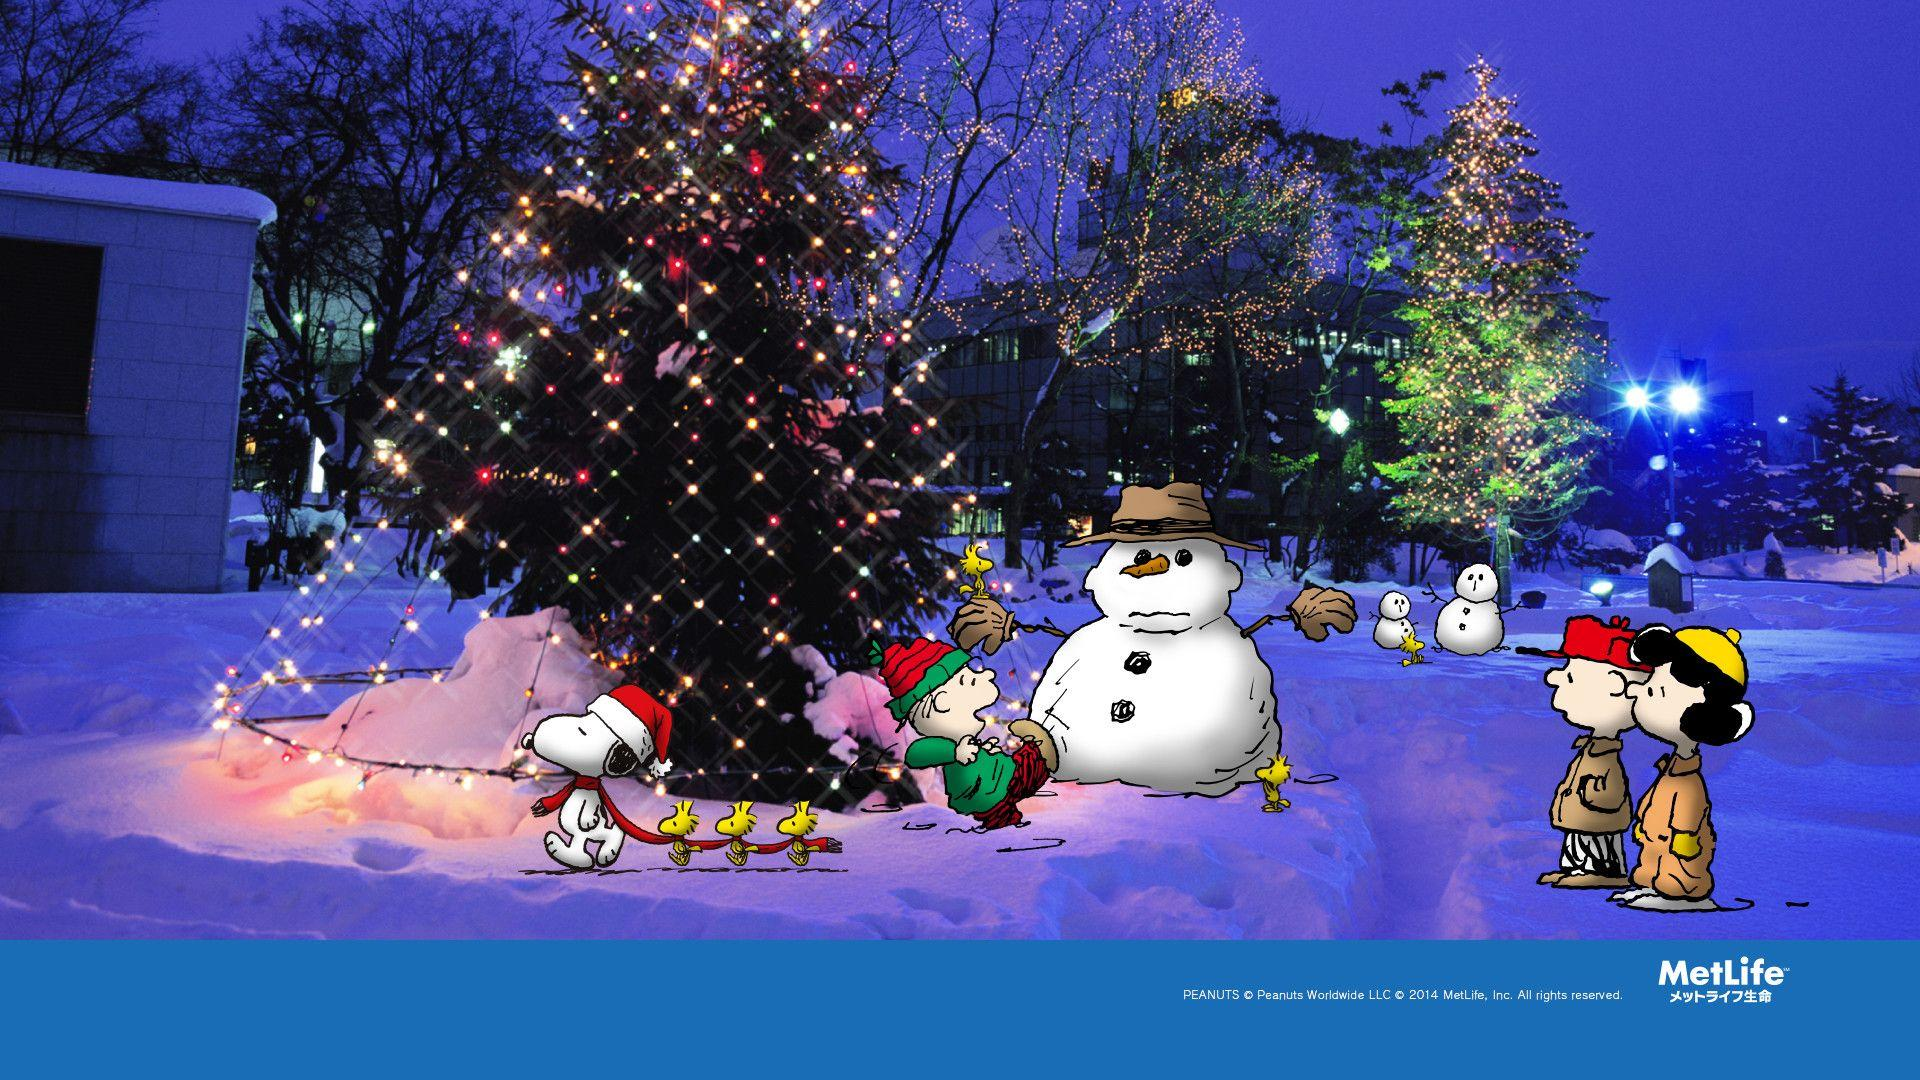 Download Snoopy Christmas Wallpaper Free Hd Backgrounds